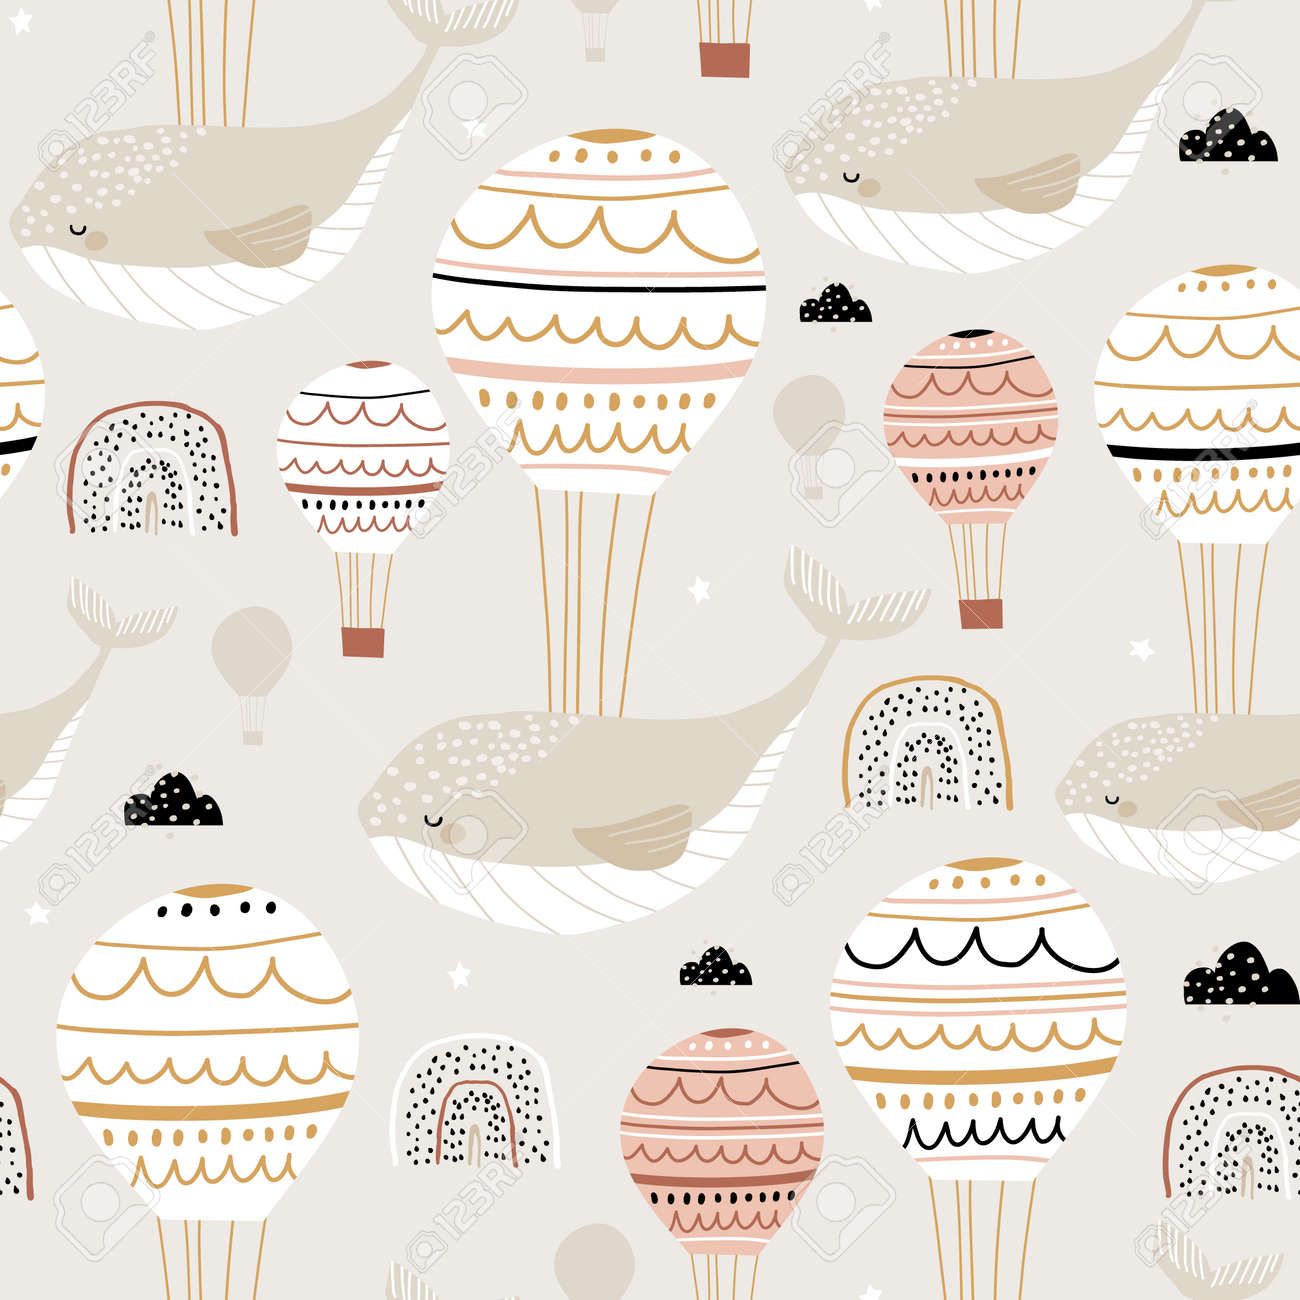 Seamless childish pattern with sleeping whales hot air balloons. Creative kids hand drawn texture for fabric, wrapping, textile, wallpaper, apparel. Vector illustration - 134080419